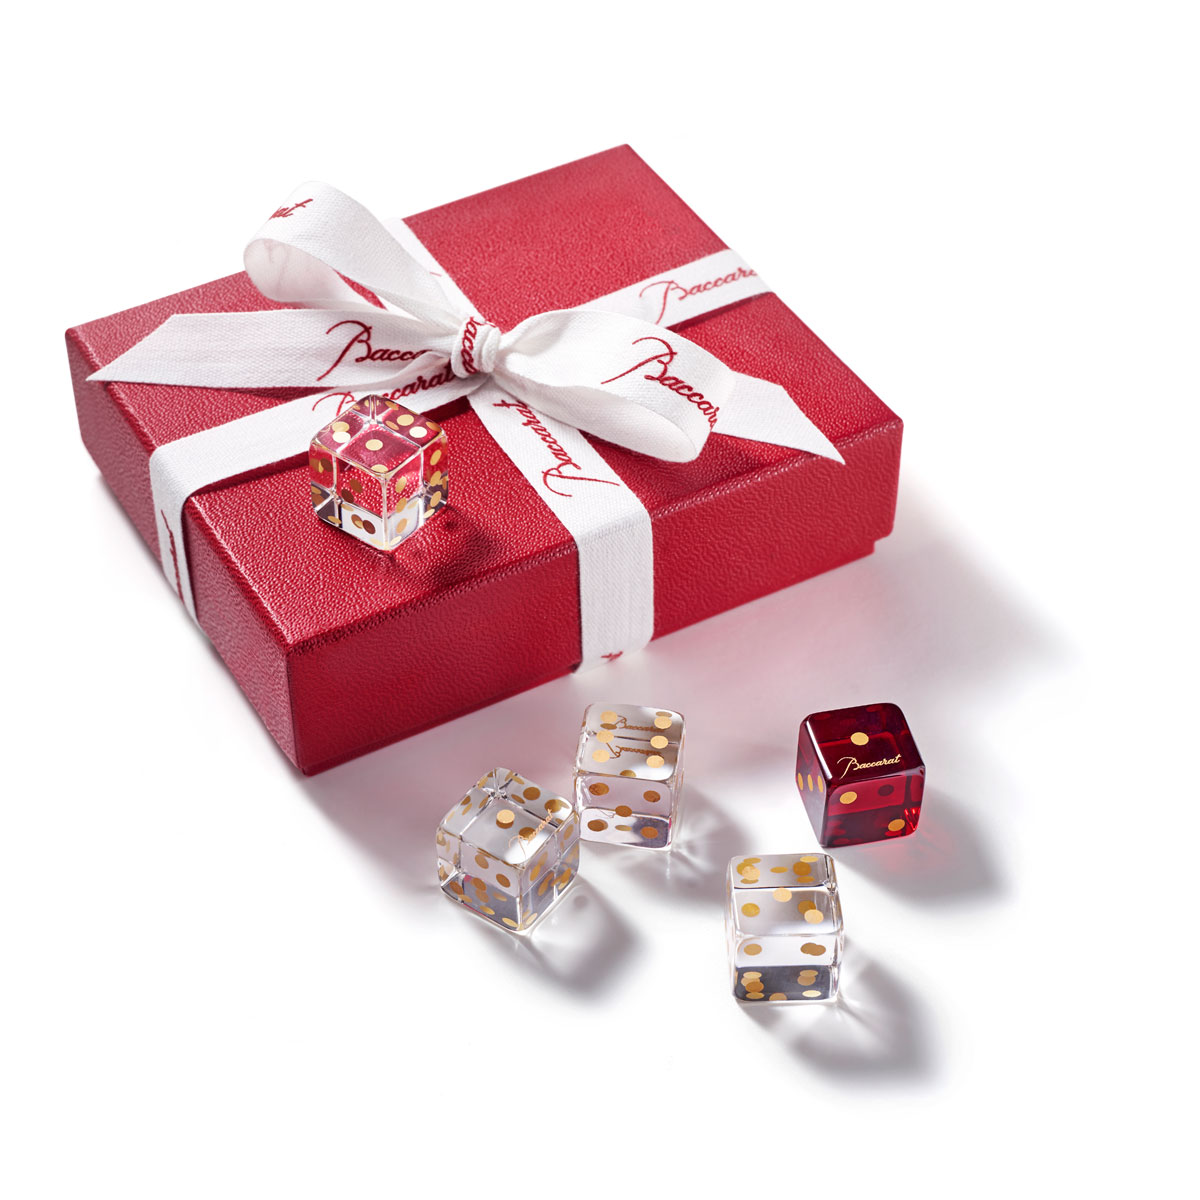 Baccarat Dice Set, 4 Clear, 1 Red